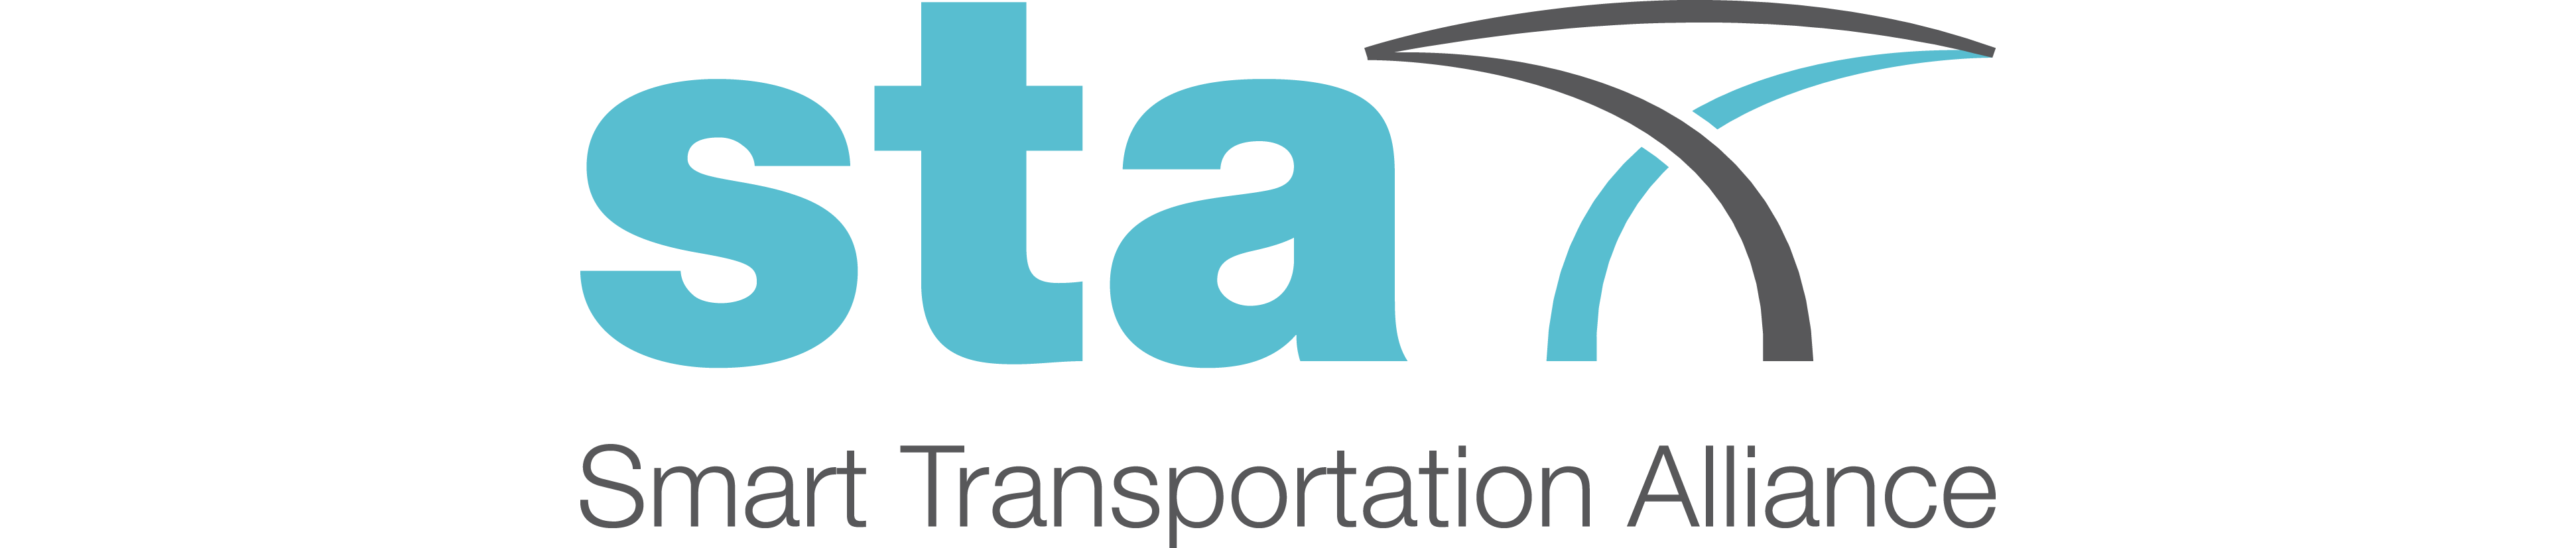 SMART TRANSPORTATION ALLIANCE